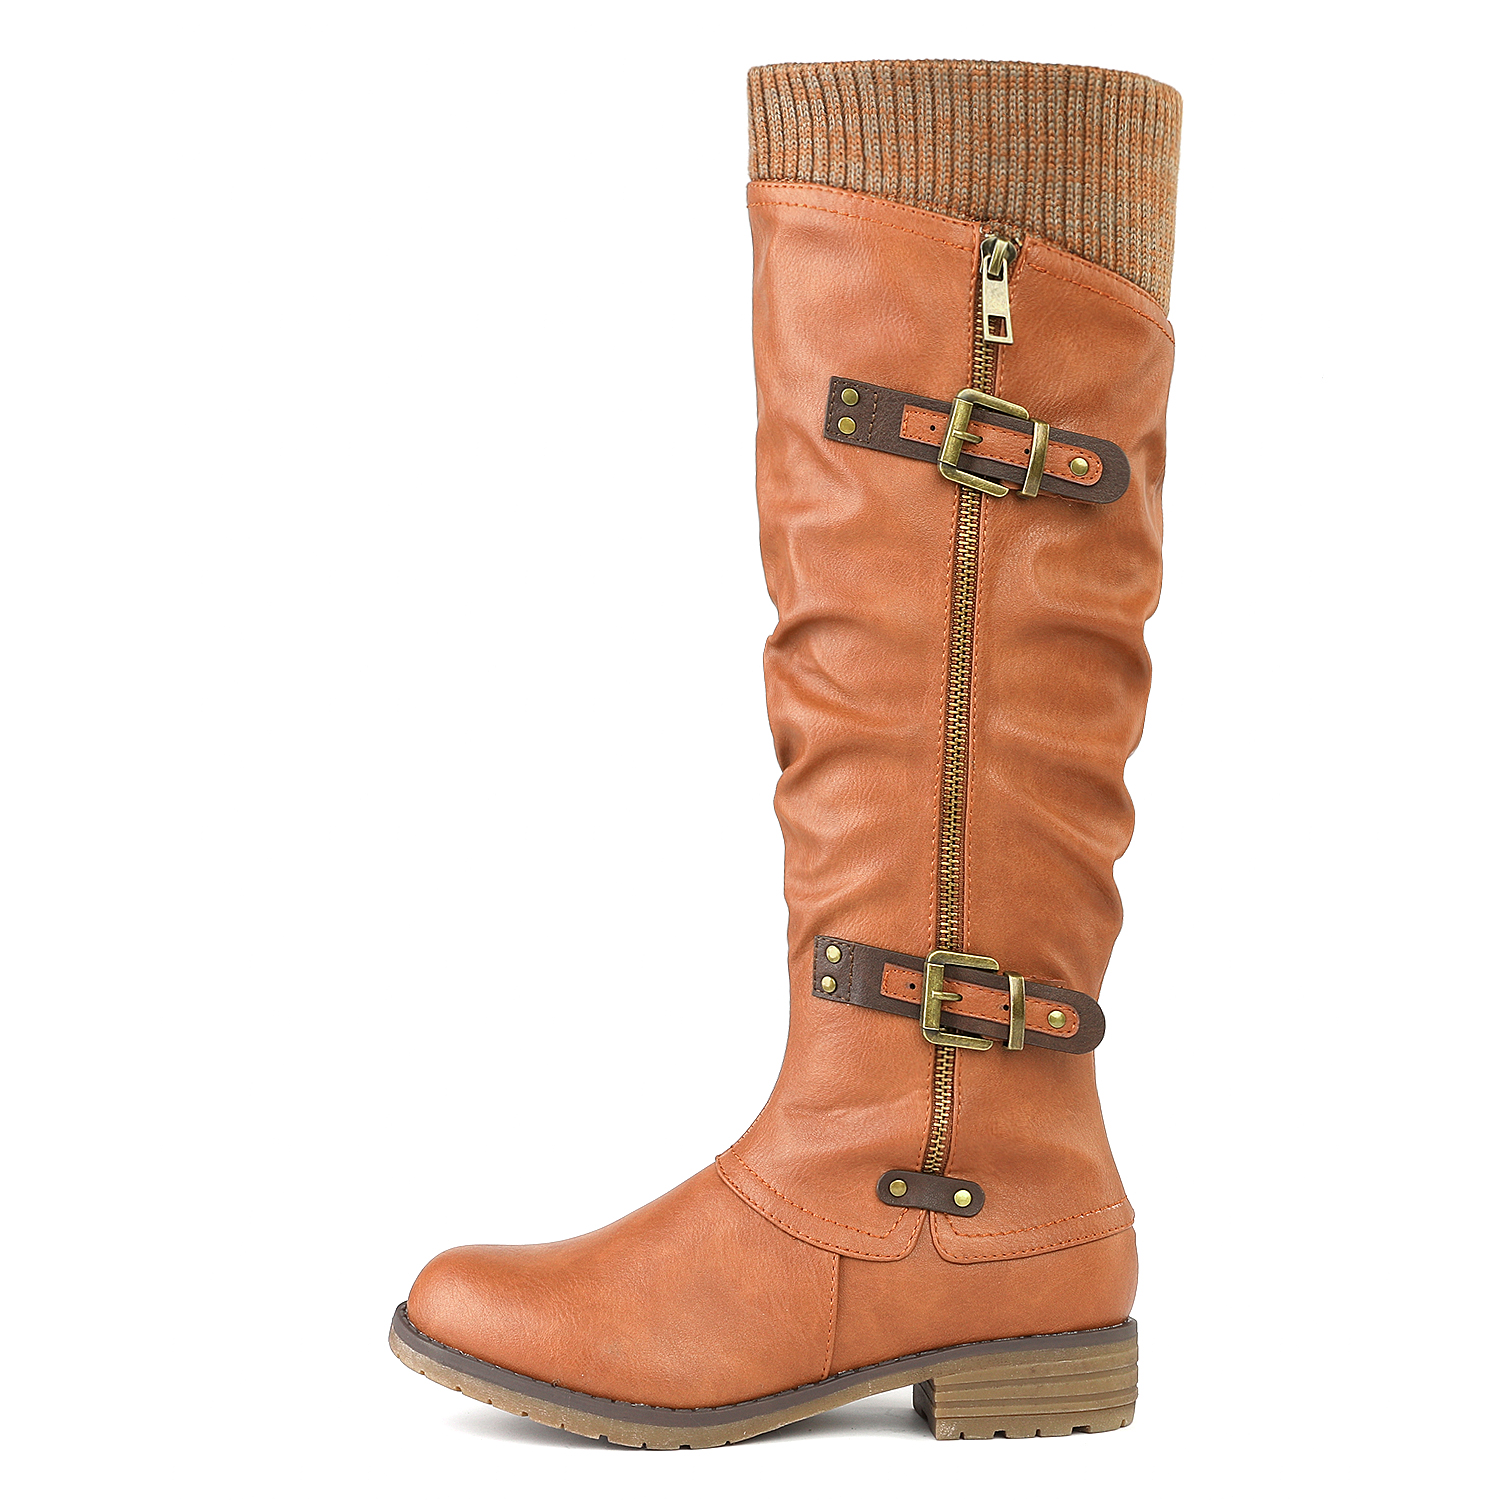 DREAM-PAIRS-Womens-DEPP-Cowgirl-Soft-PU-Leather-Combat-Knee-High-Riding-Boots thumbnail 20